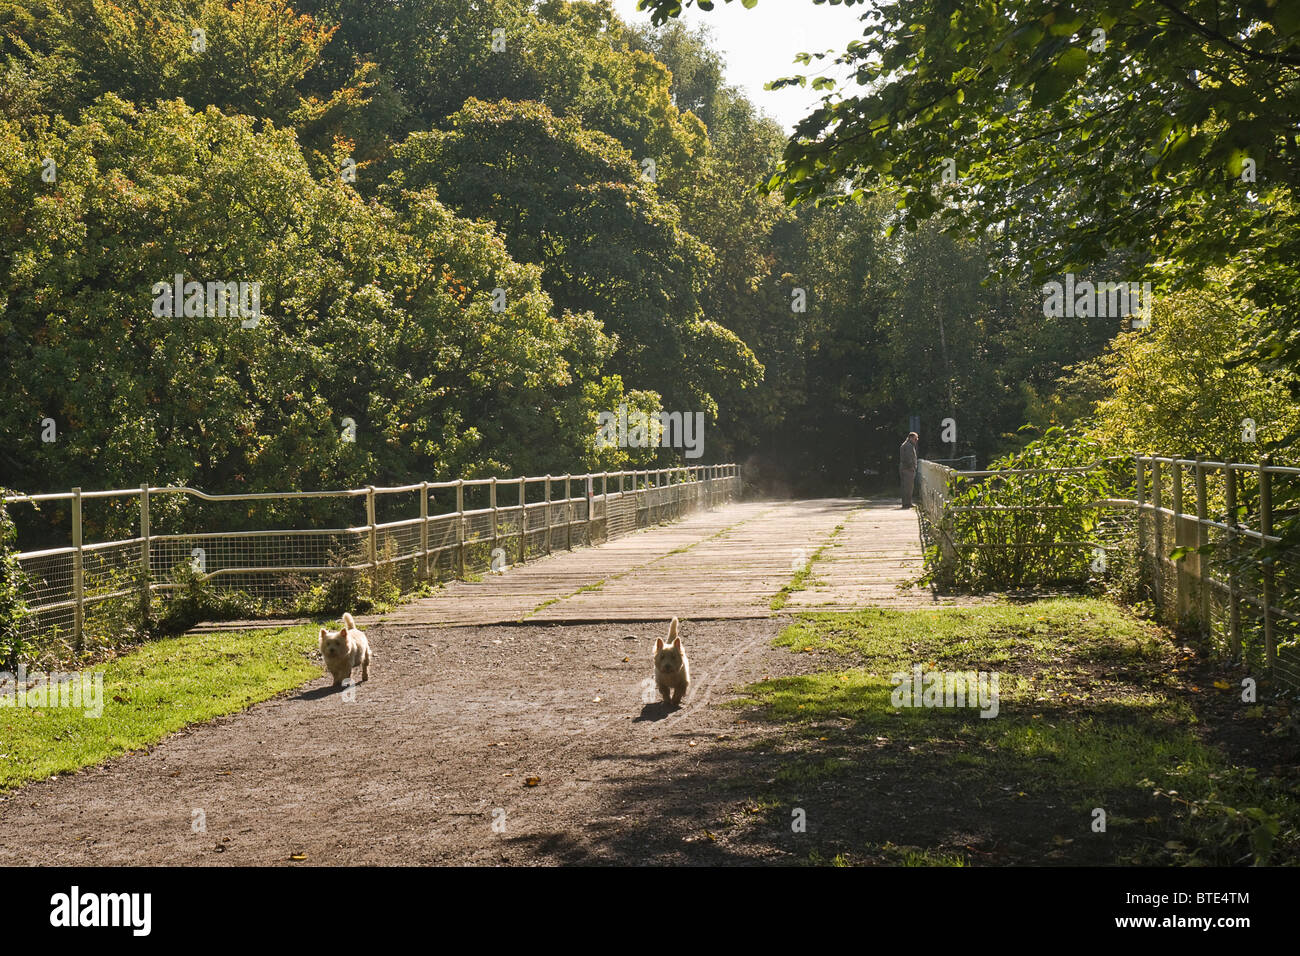 Two West Highland terriers enjoying a woodland walk at Easby, near Richmond, North Yorkshire. Stock Photo